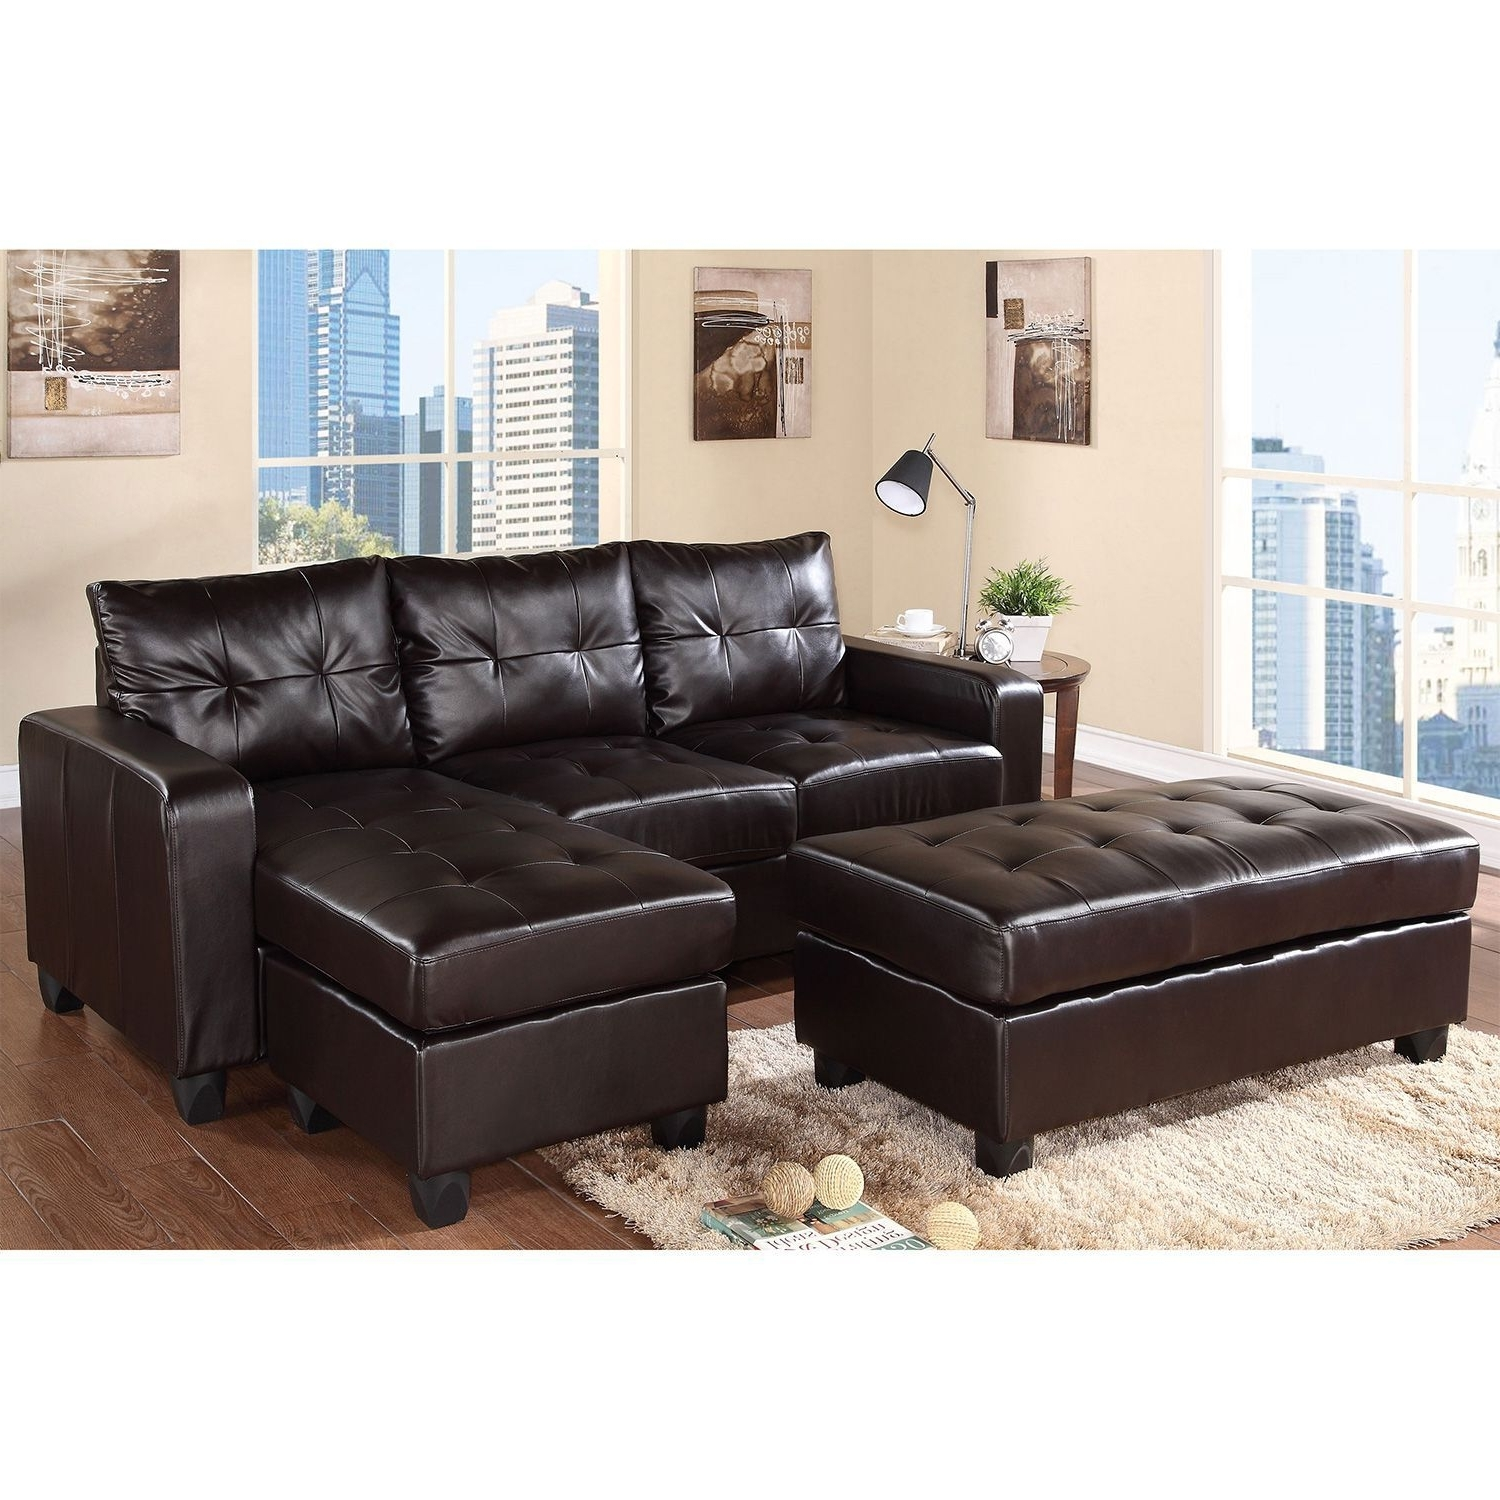 Leather Sofas For Favorite Aspen Leather Sofas (View 20 of 20)